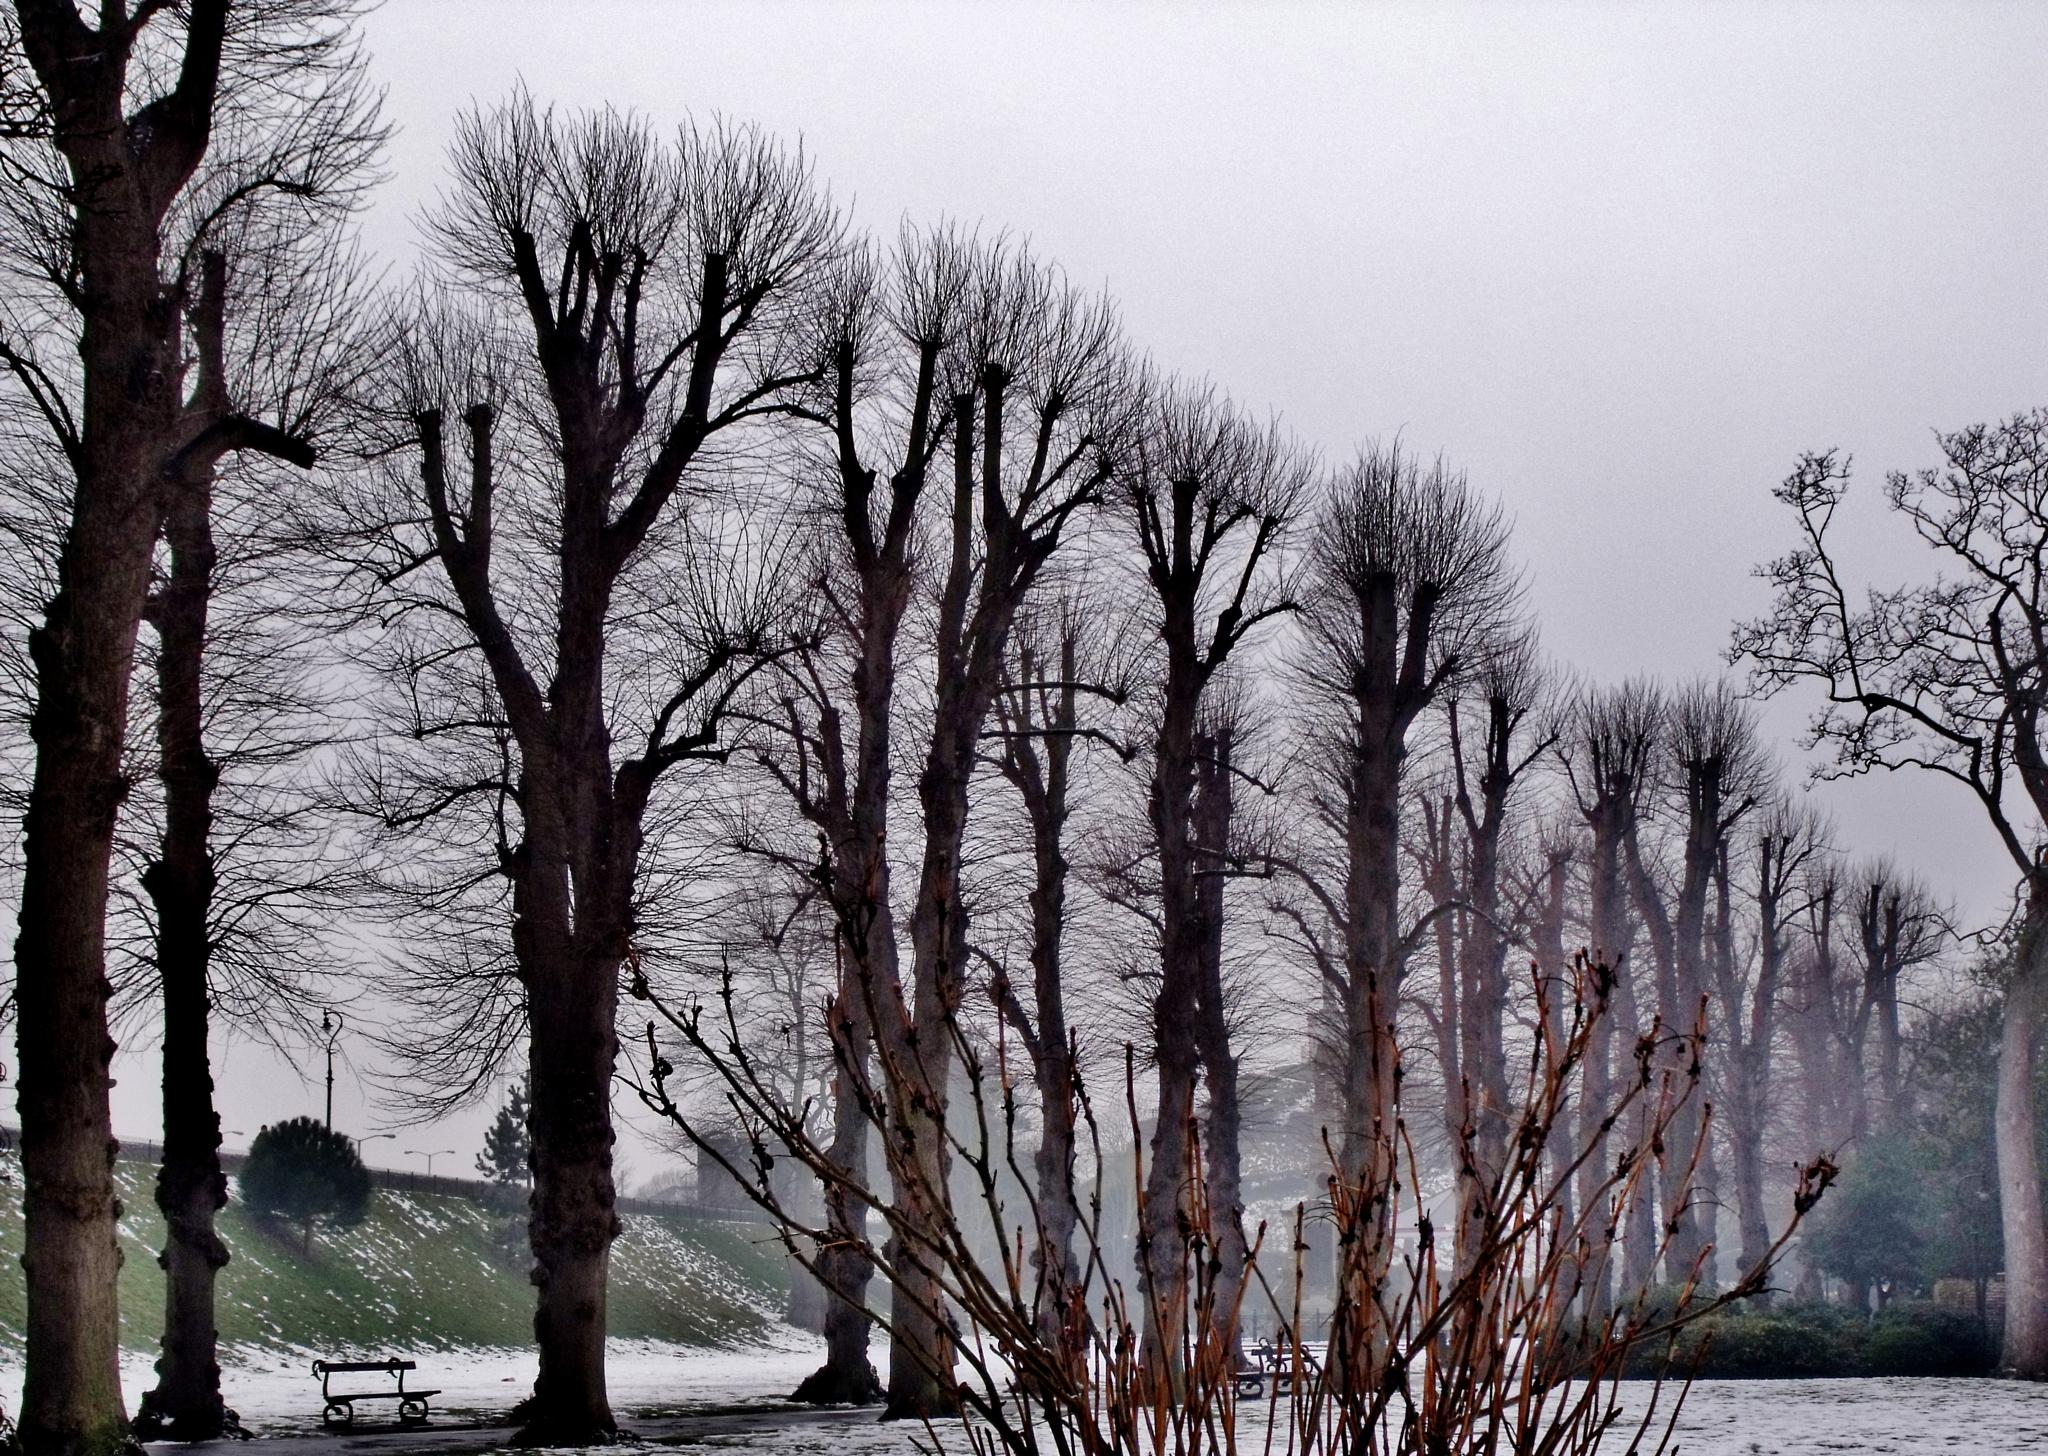 Snow trees by barbara.summers1